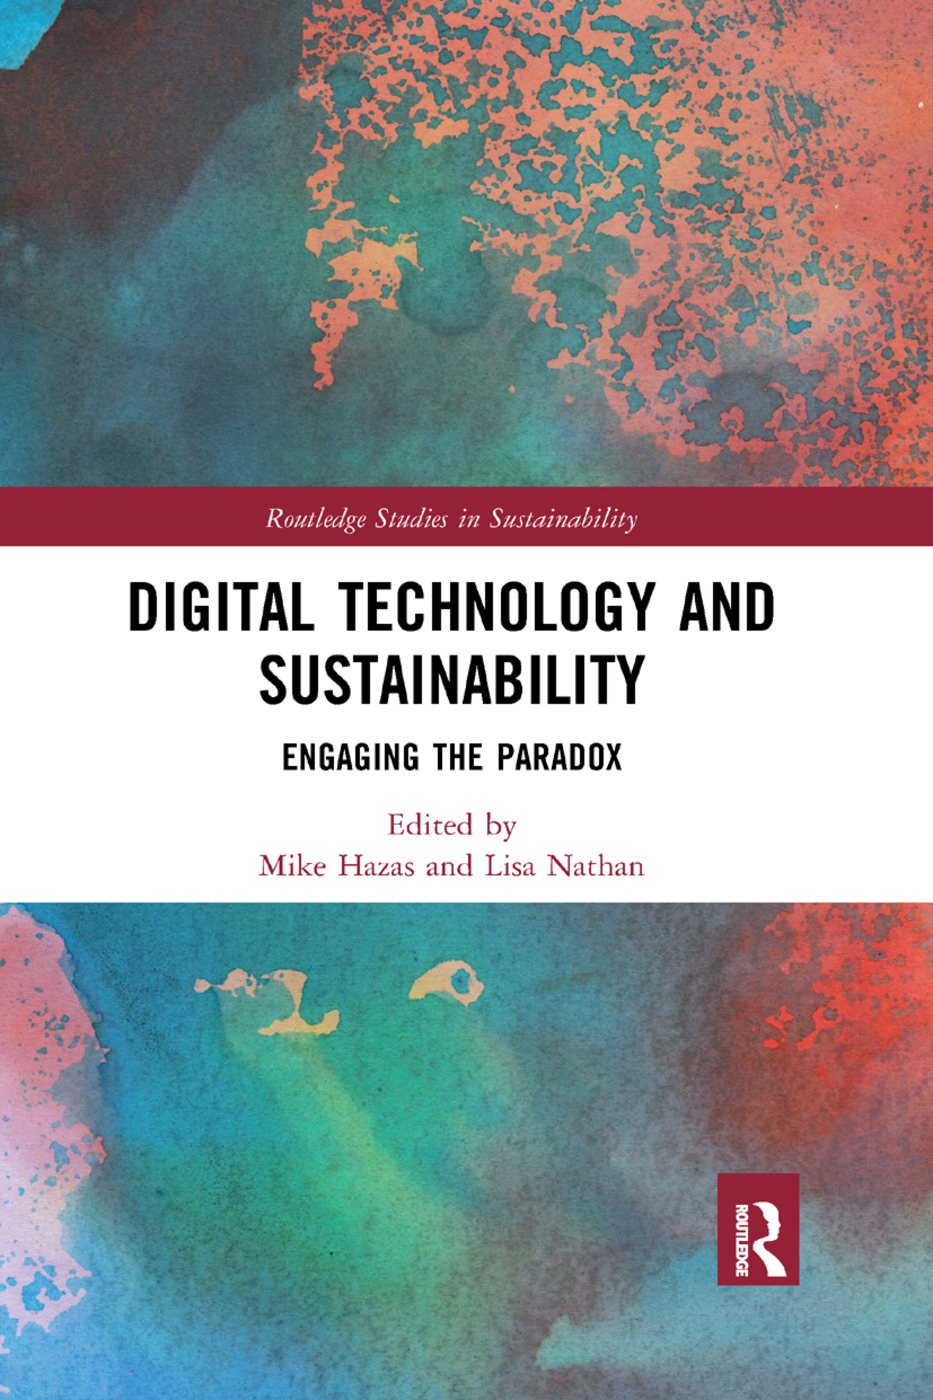 Digital Technology and Sustainability: Engaging the Paradox book cover